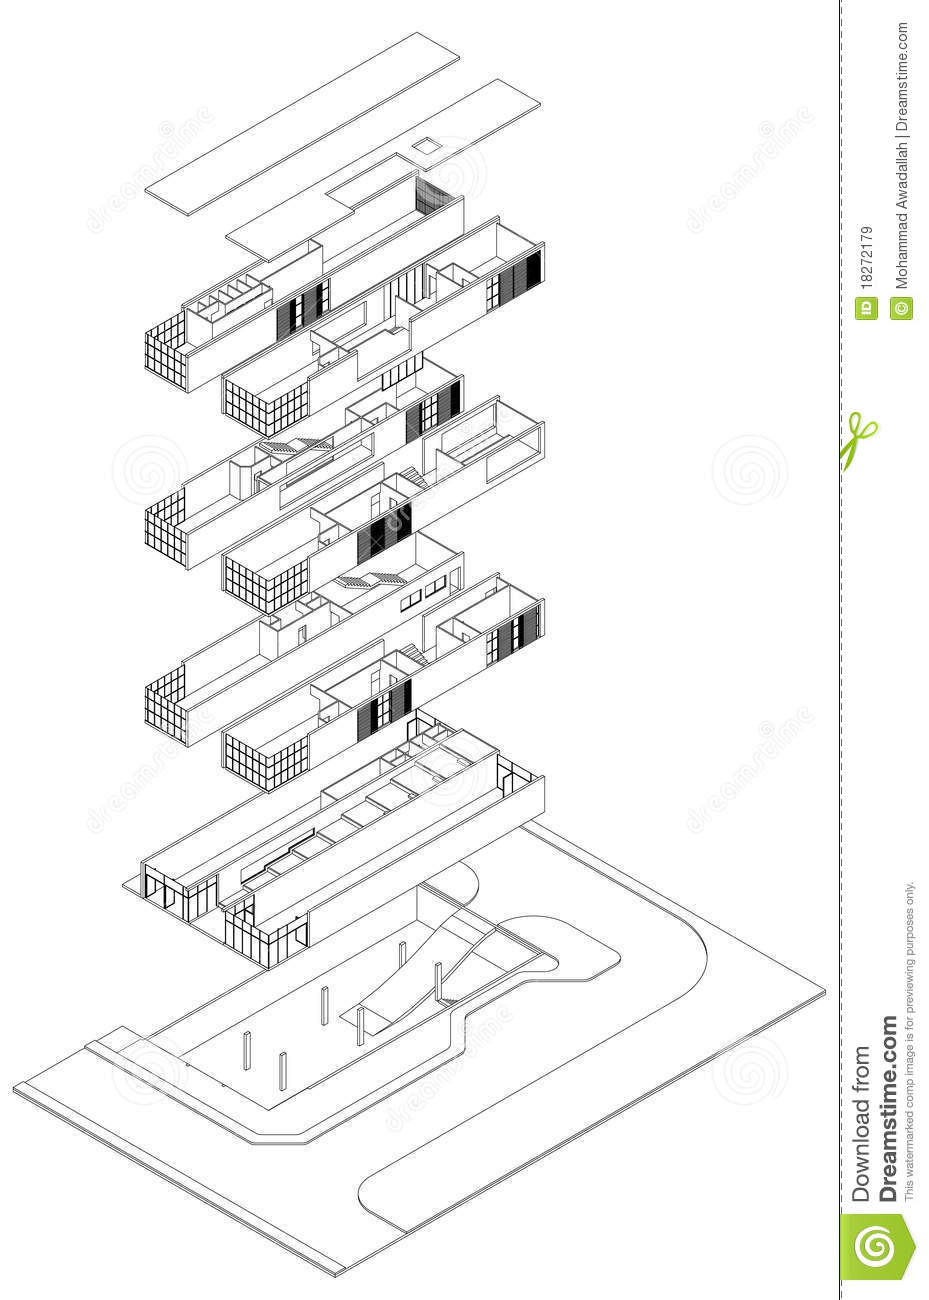 Exploded Isometric Drawing Stock Vector Illustration Of